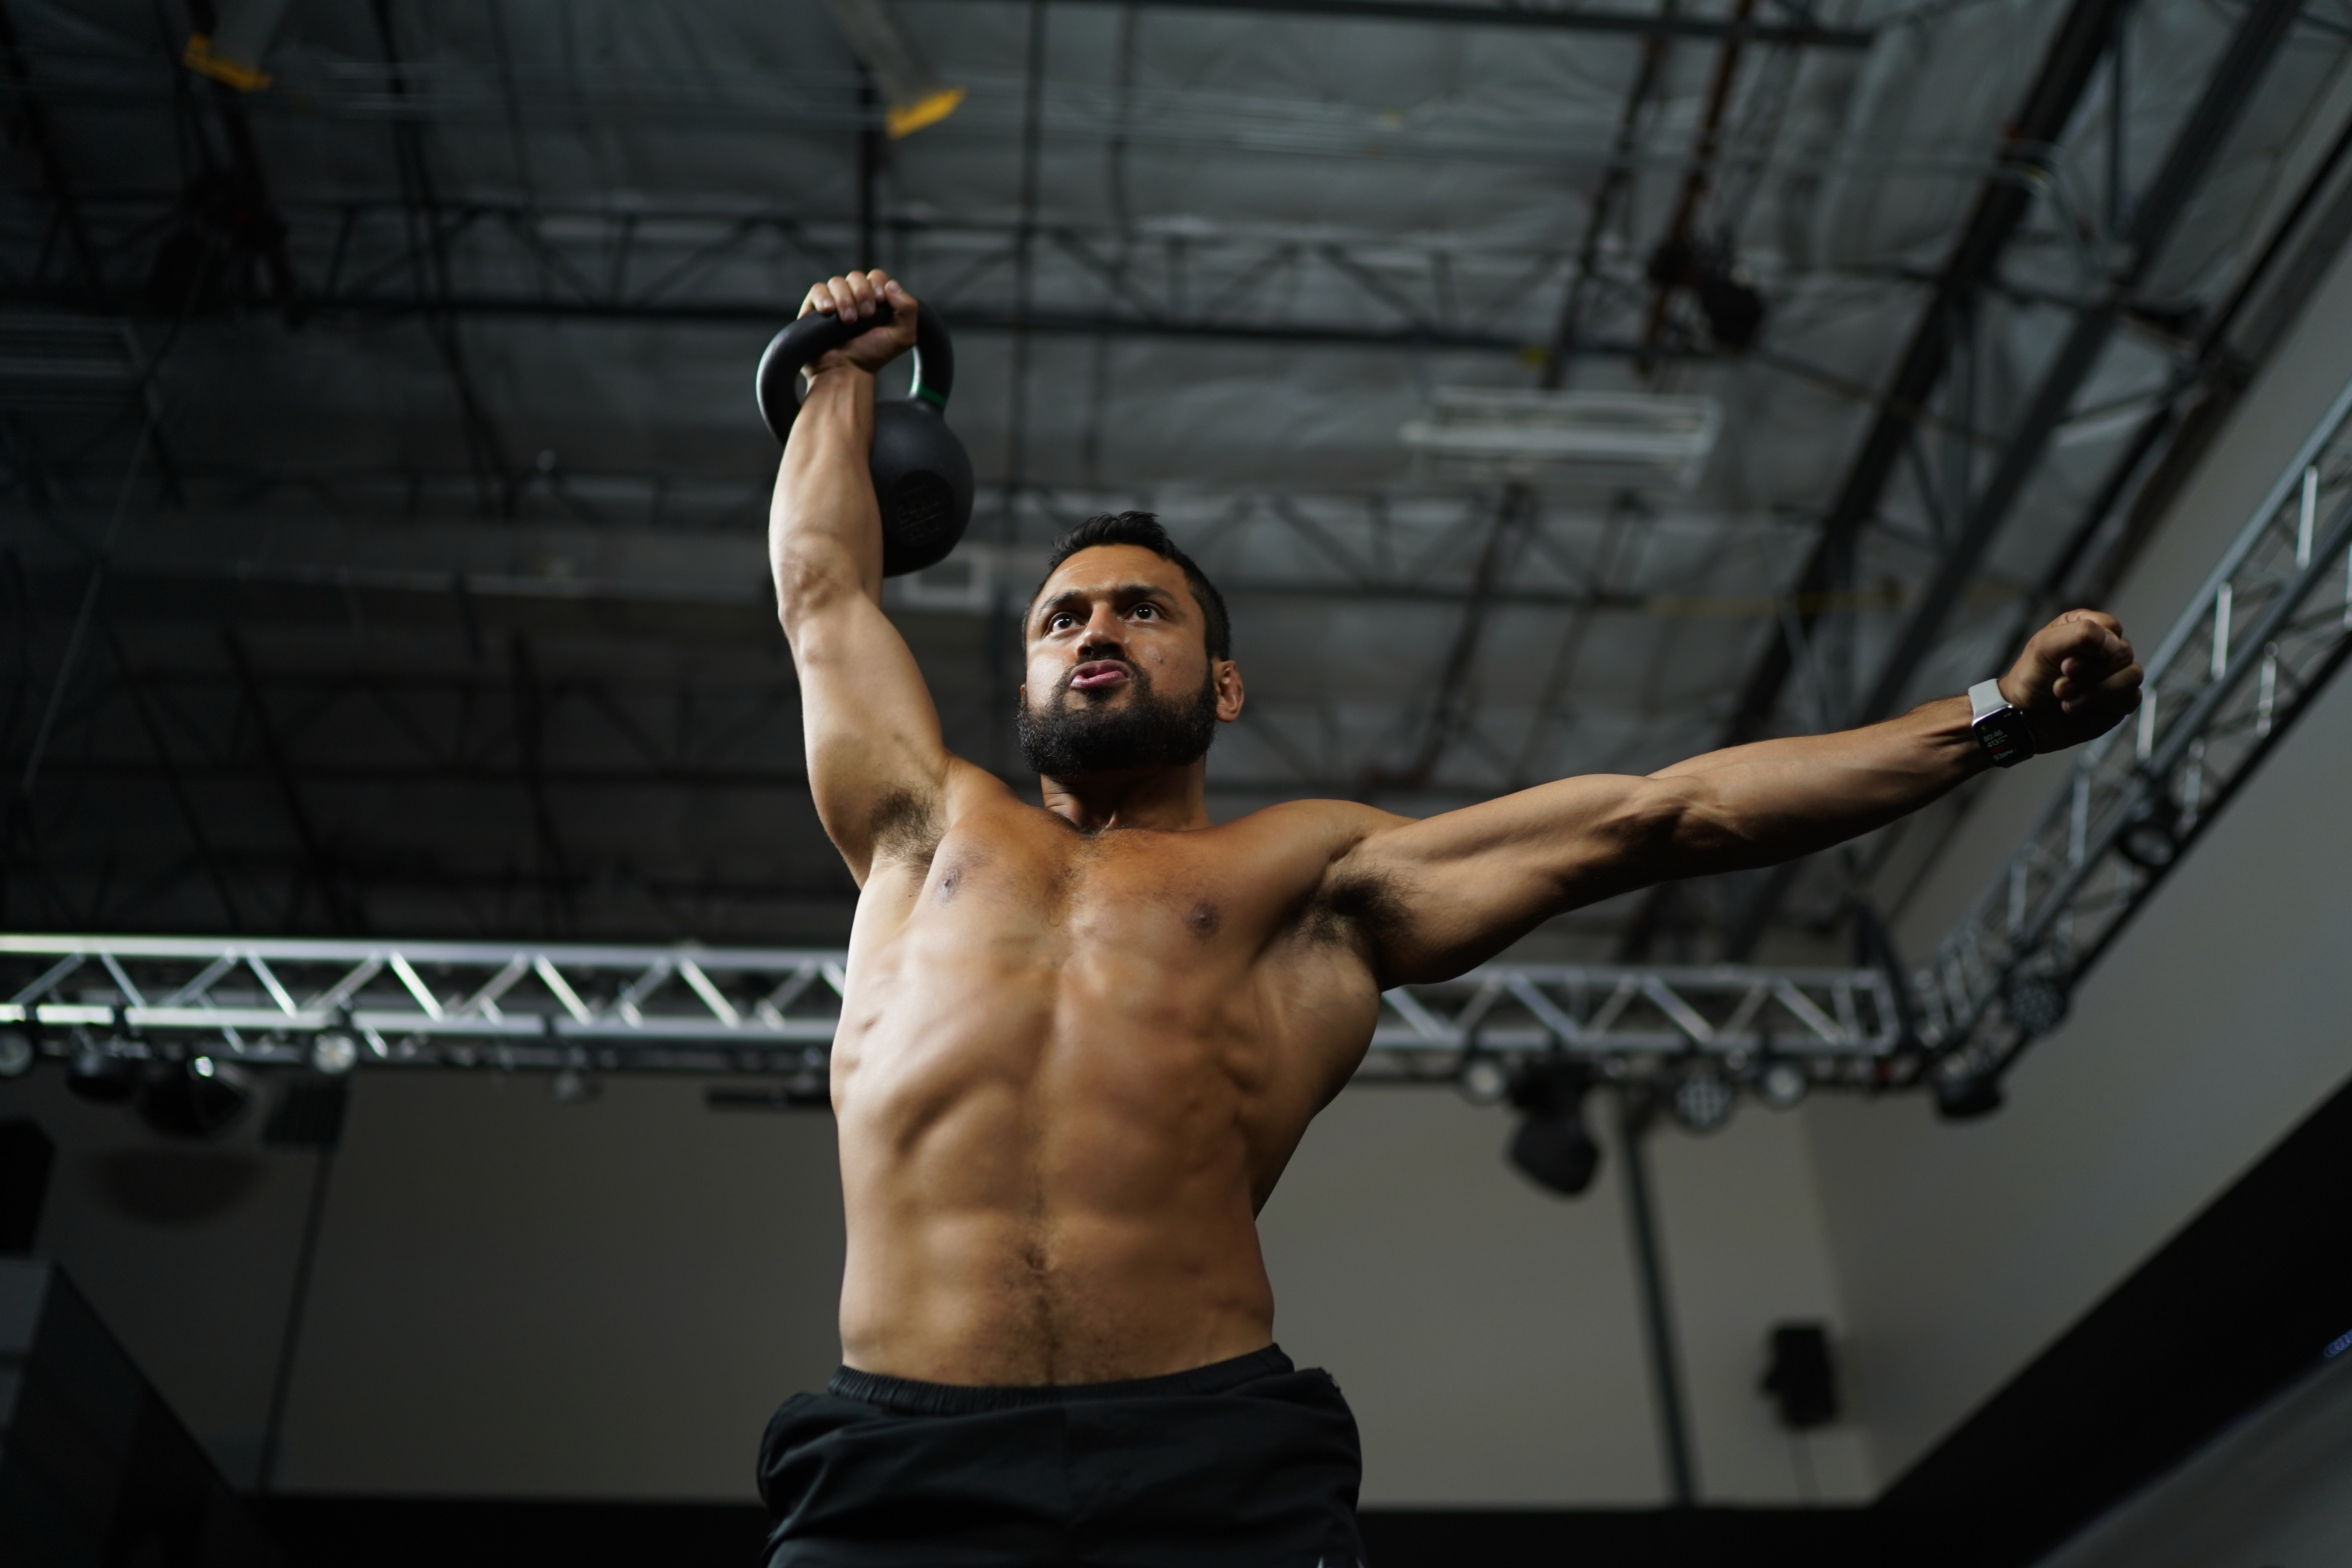 Eric Leija performing a snatch, a classic kettlebell exercise